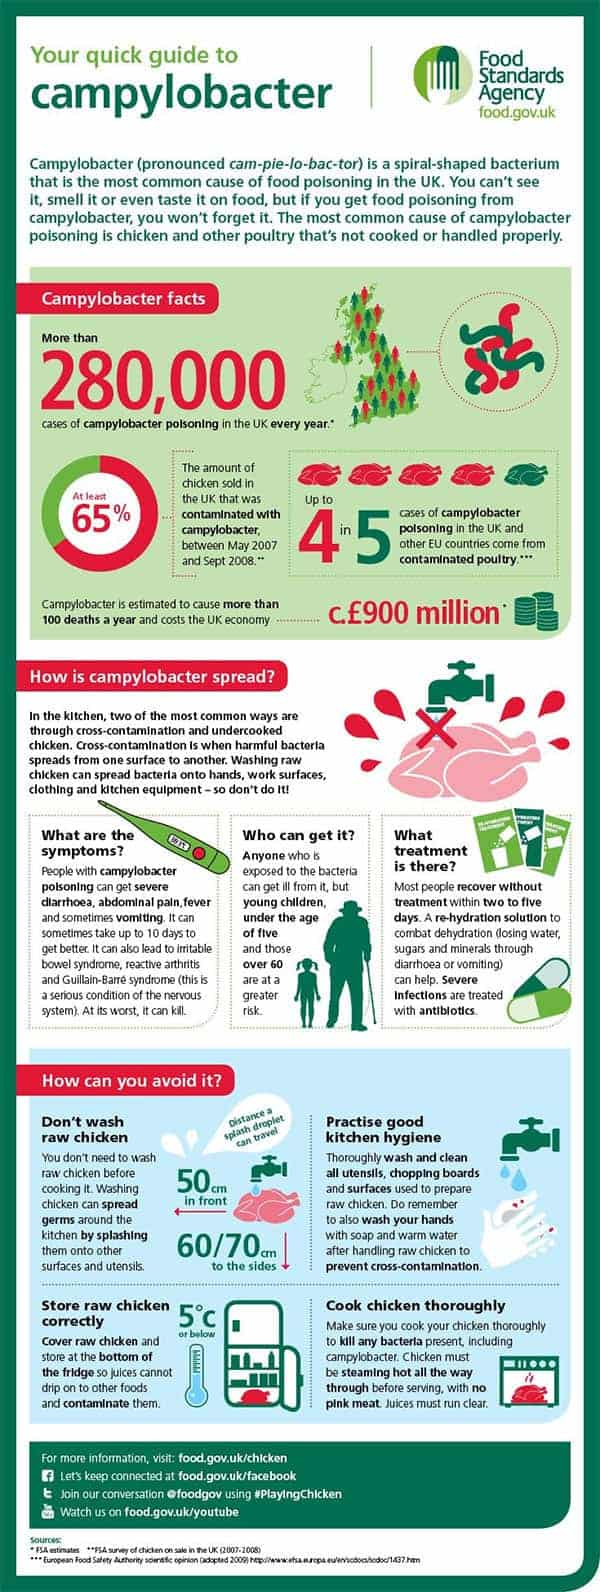 Campylobacter infographic from the Food Standards Agency